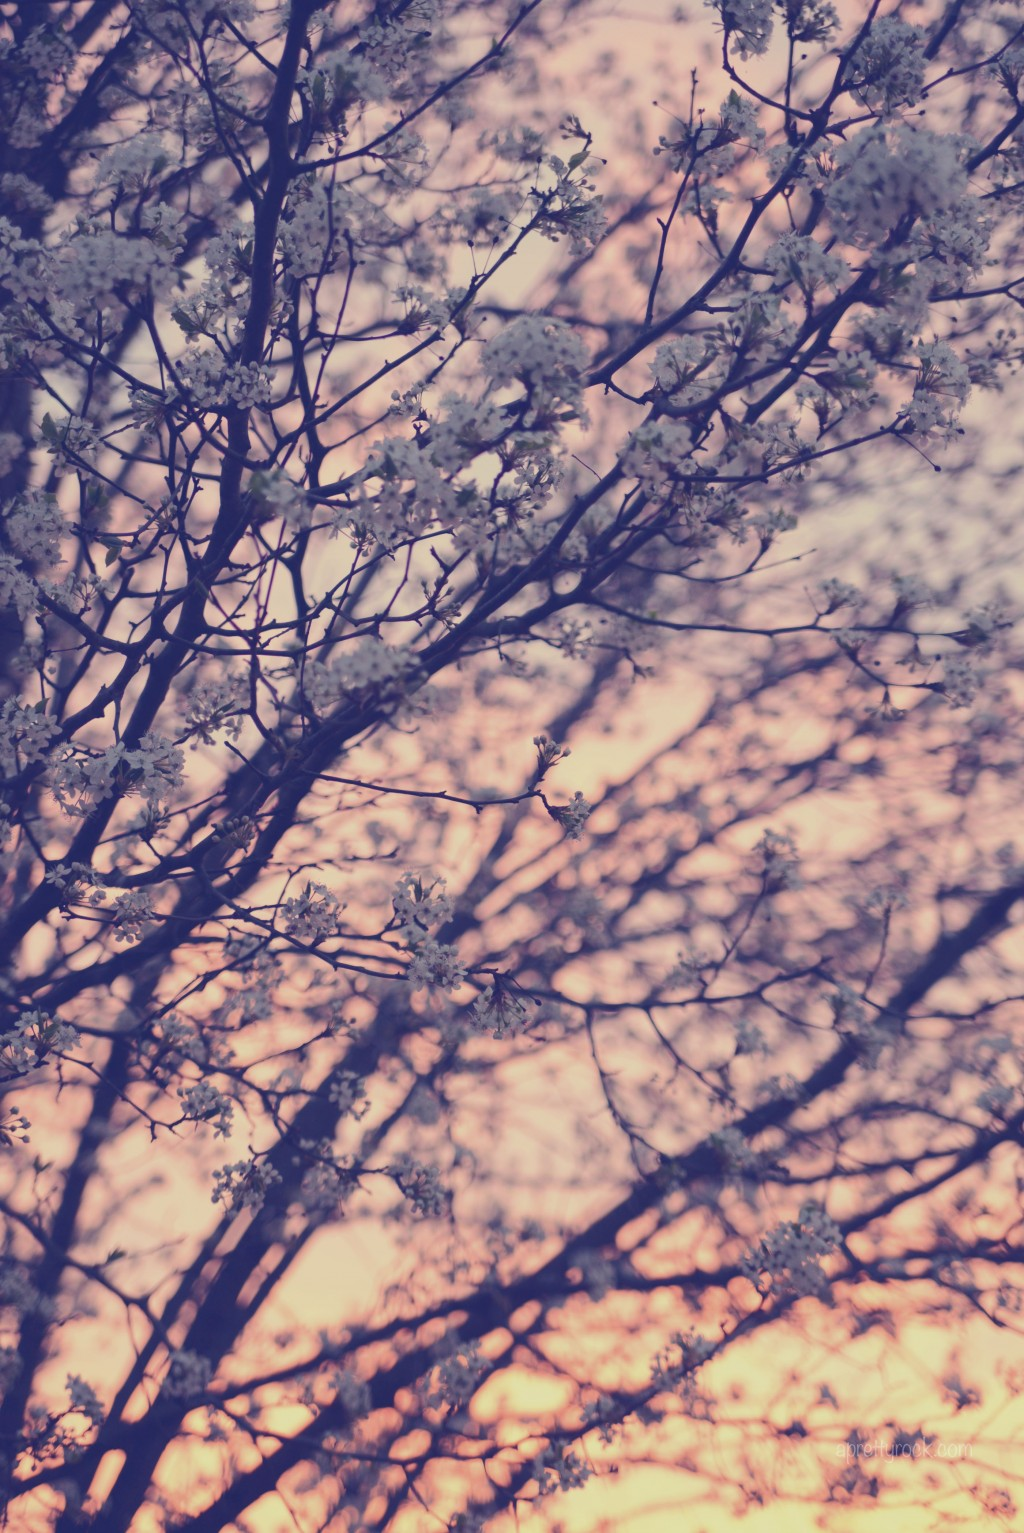 {76/365} Beautiful blooms. Beautiful sunset.